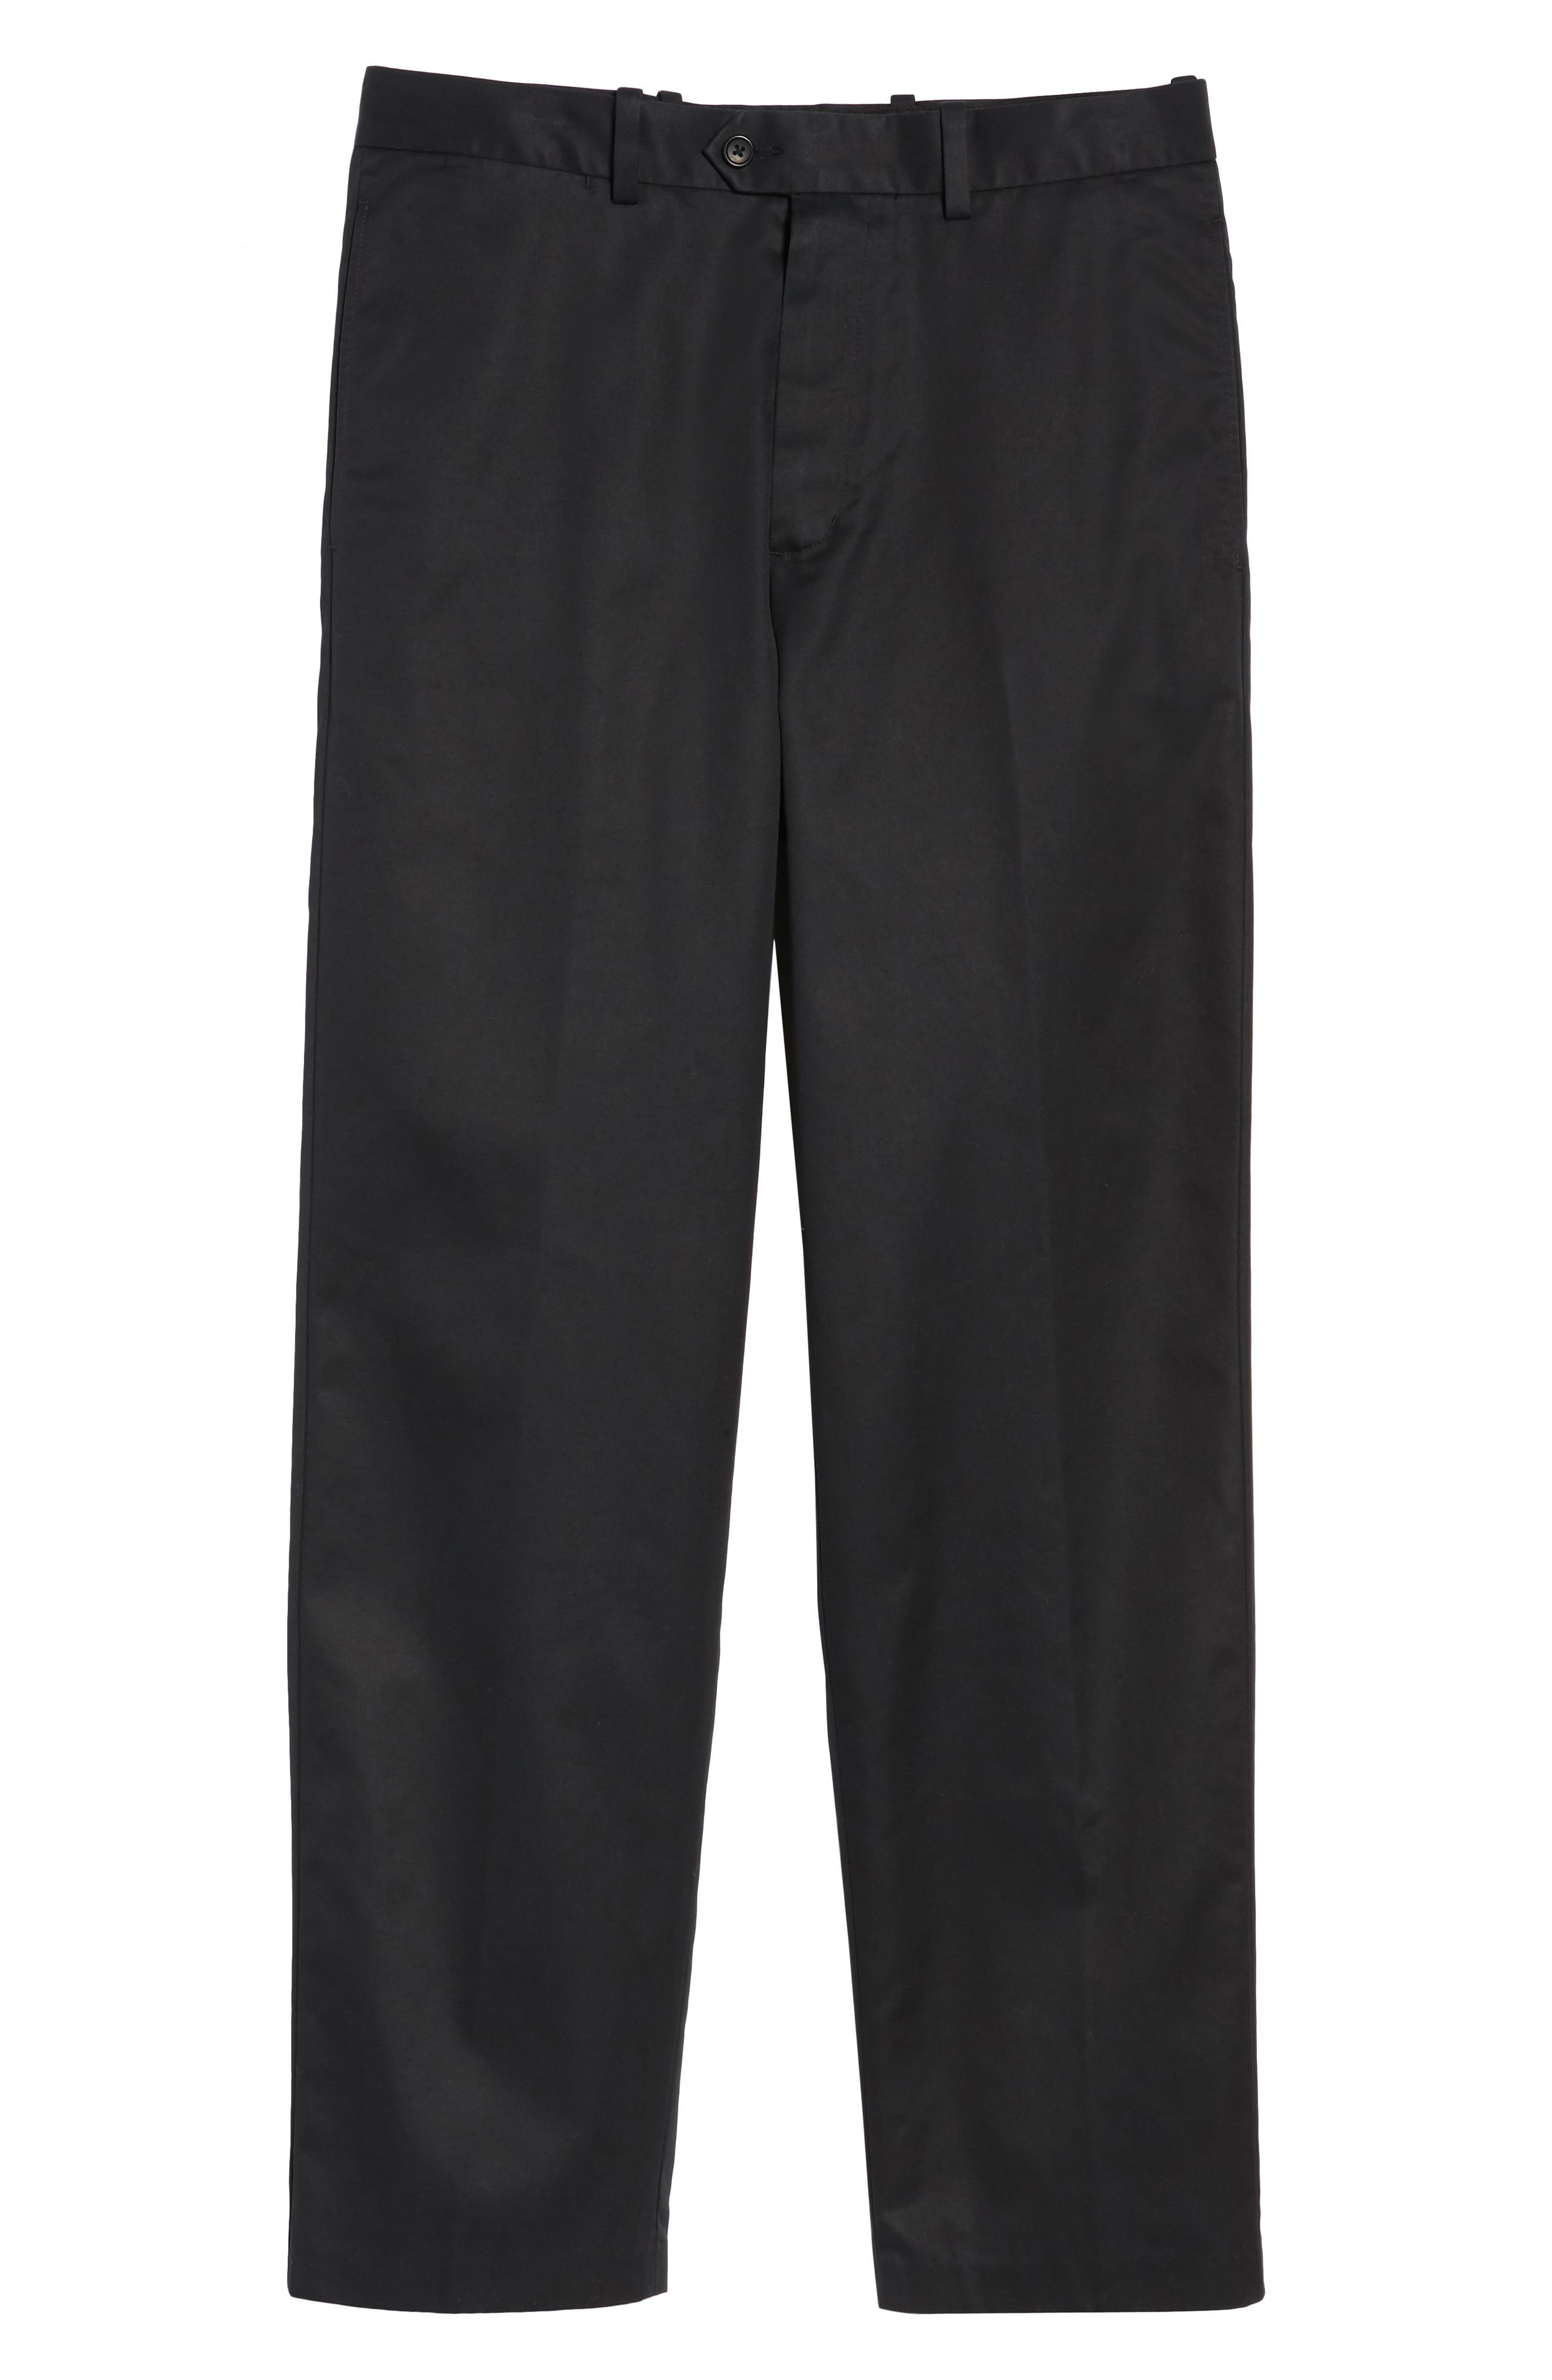 NORDSTROM MEN'S SHOP Smartcare<sup>™</sup> Classic Supima<sup>®</sup> Cotton Flat Front Trousers, Main, color, BLACK CAVIAR